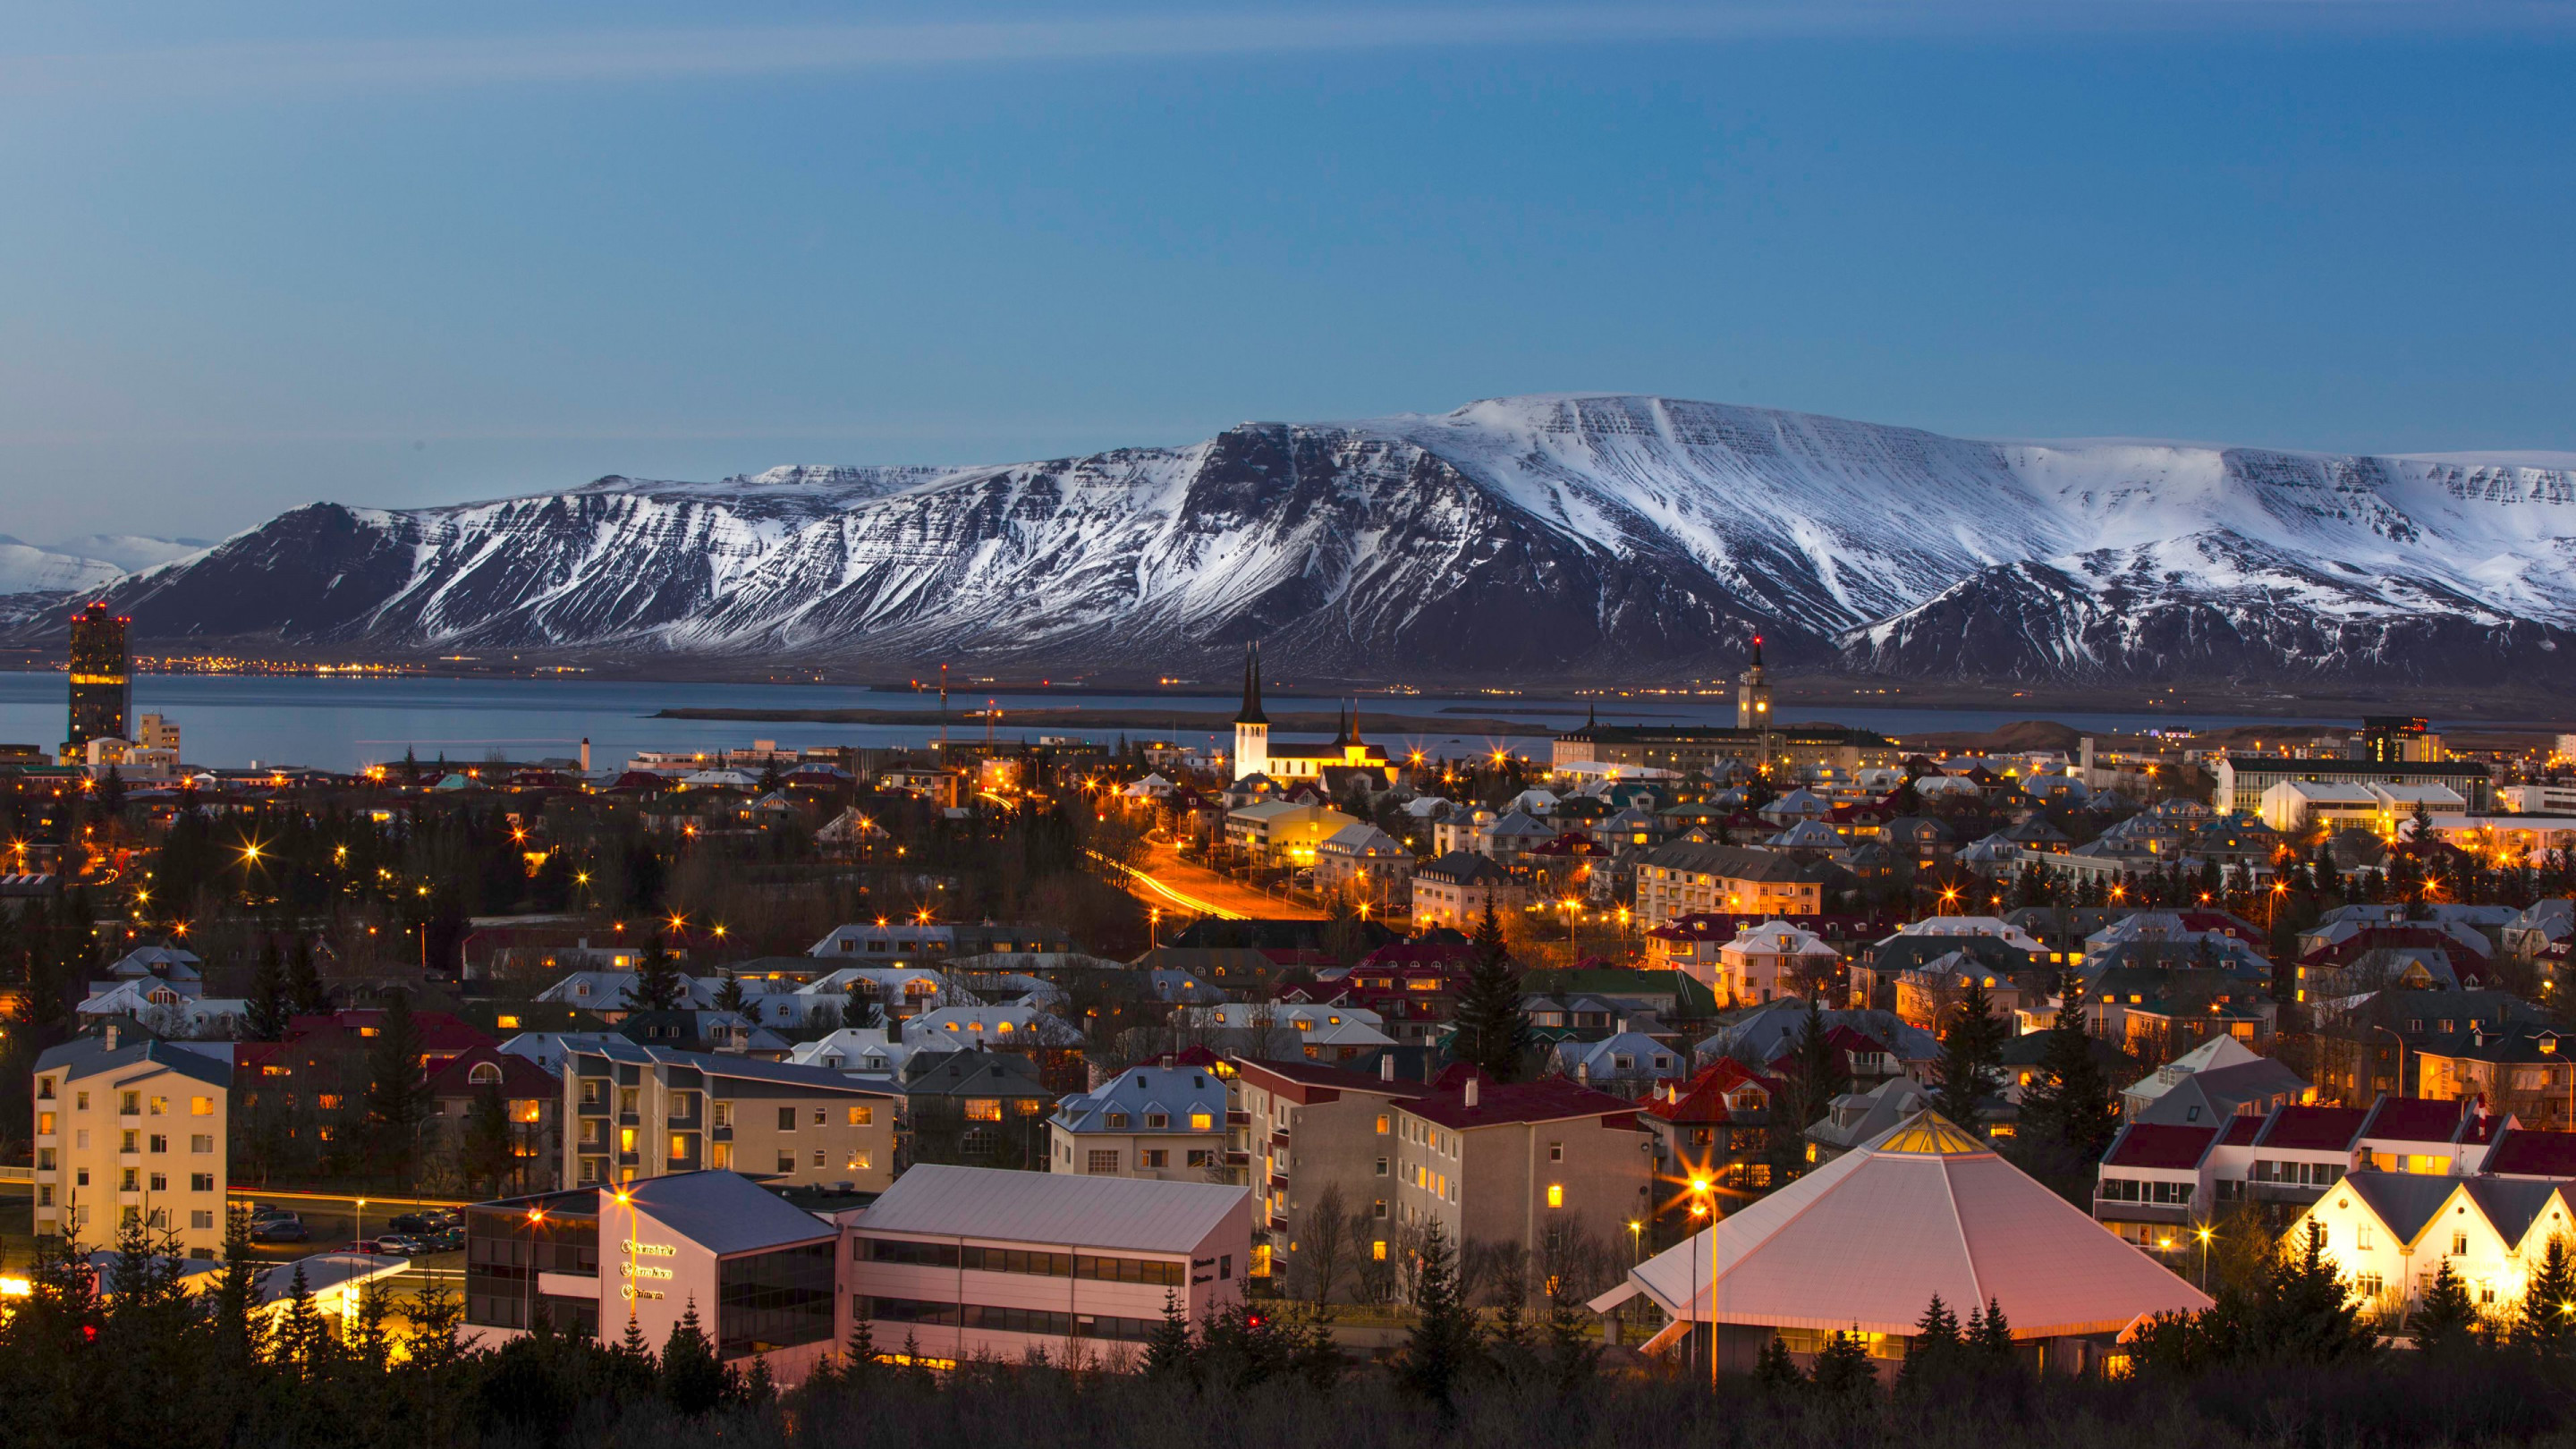 View over the Reykjavik city wallpaper 2880x1620